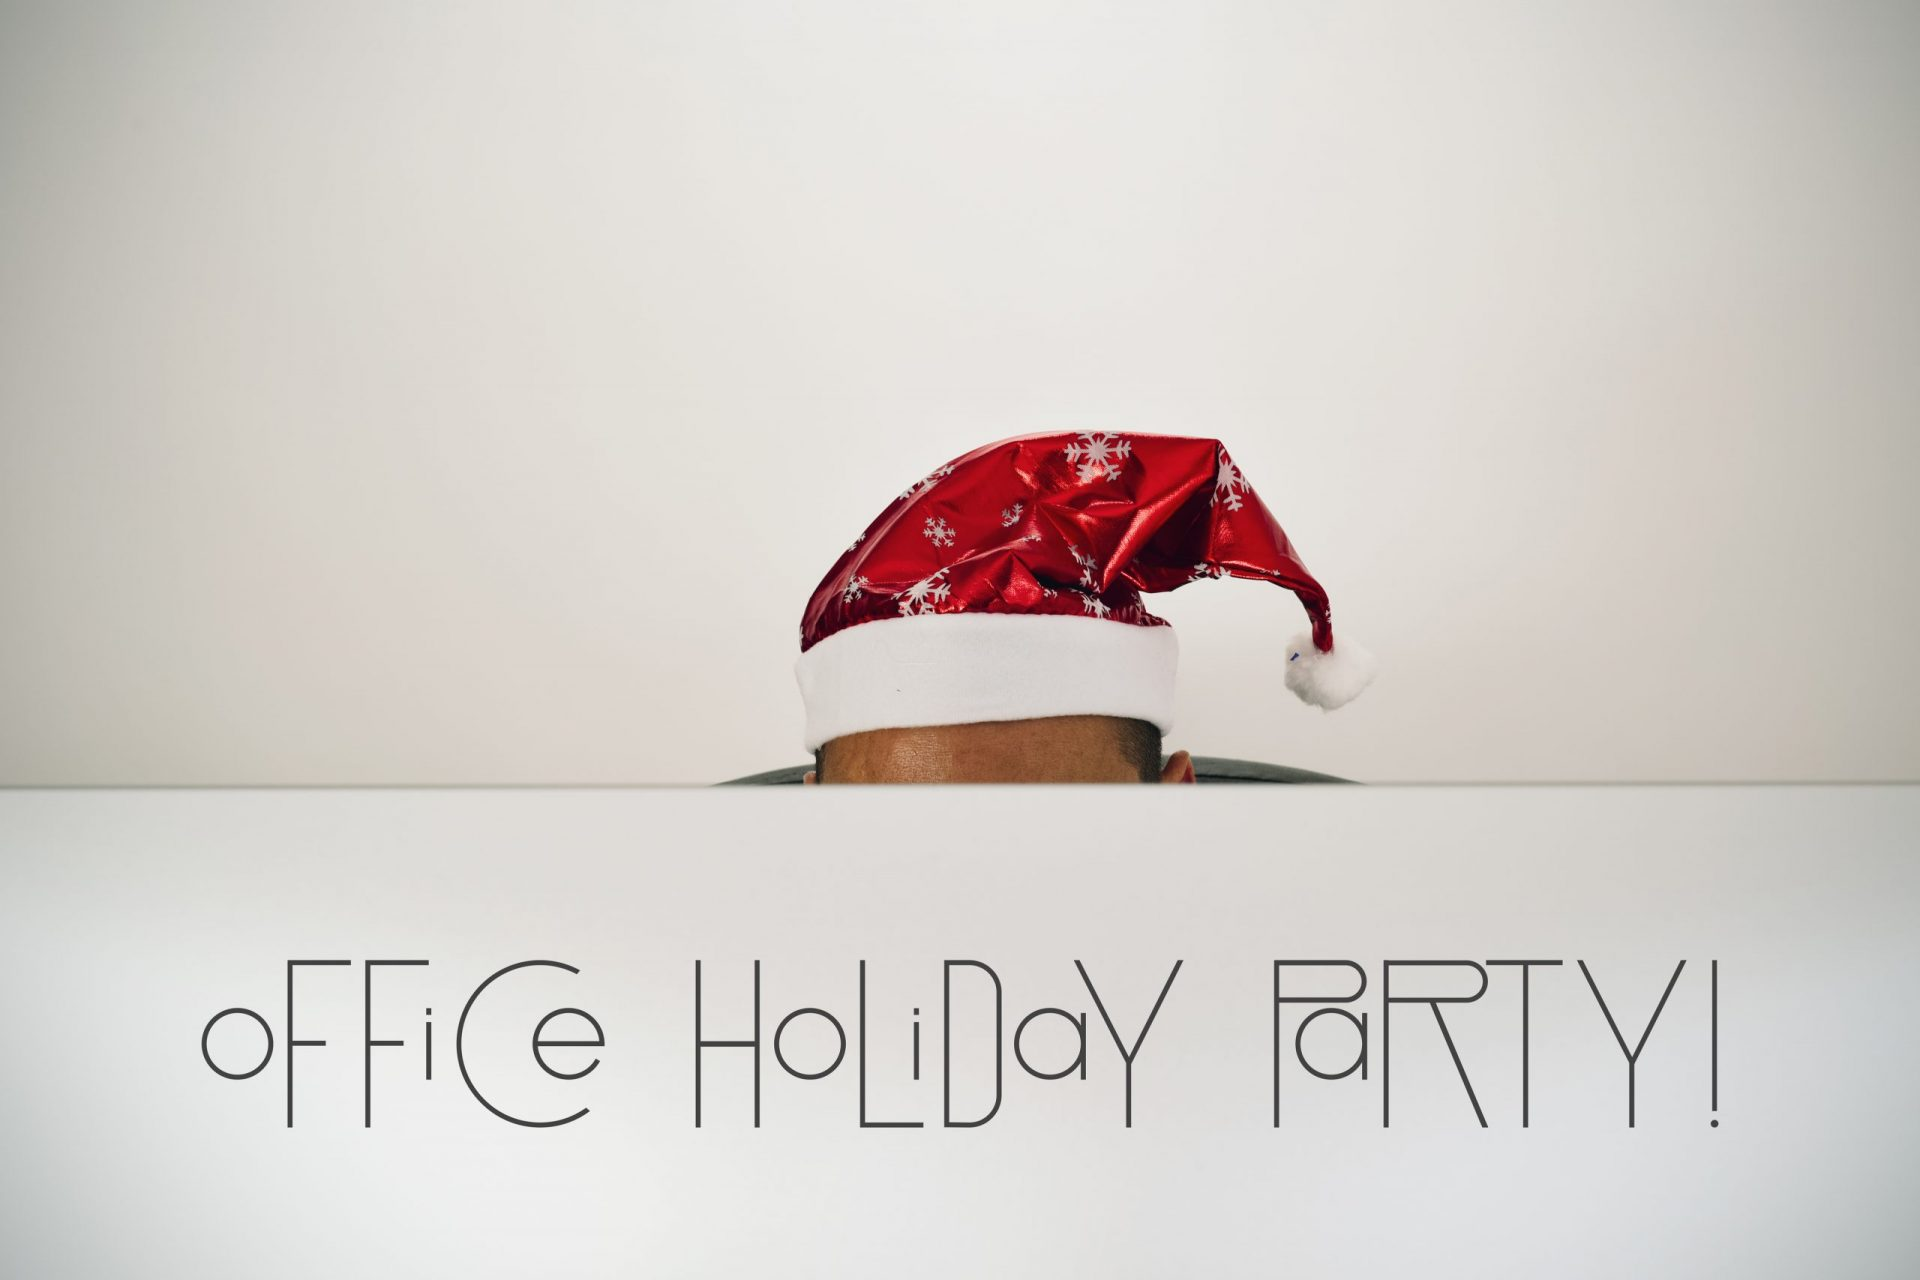 4 Ways to Make Your Office Holiday Party Fun